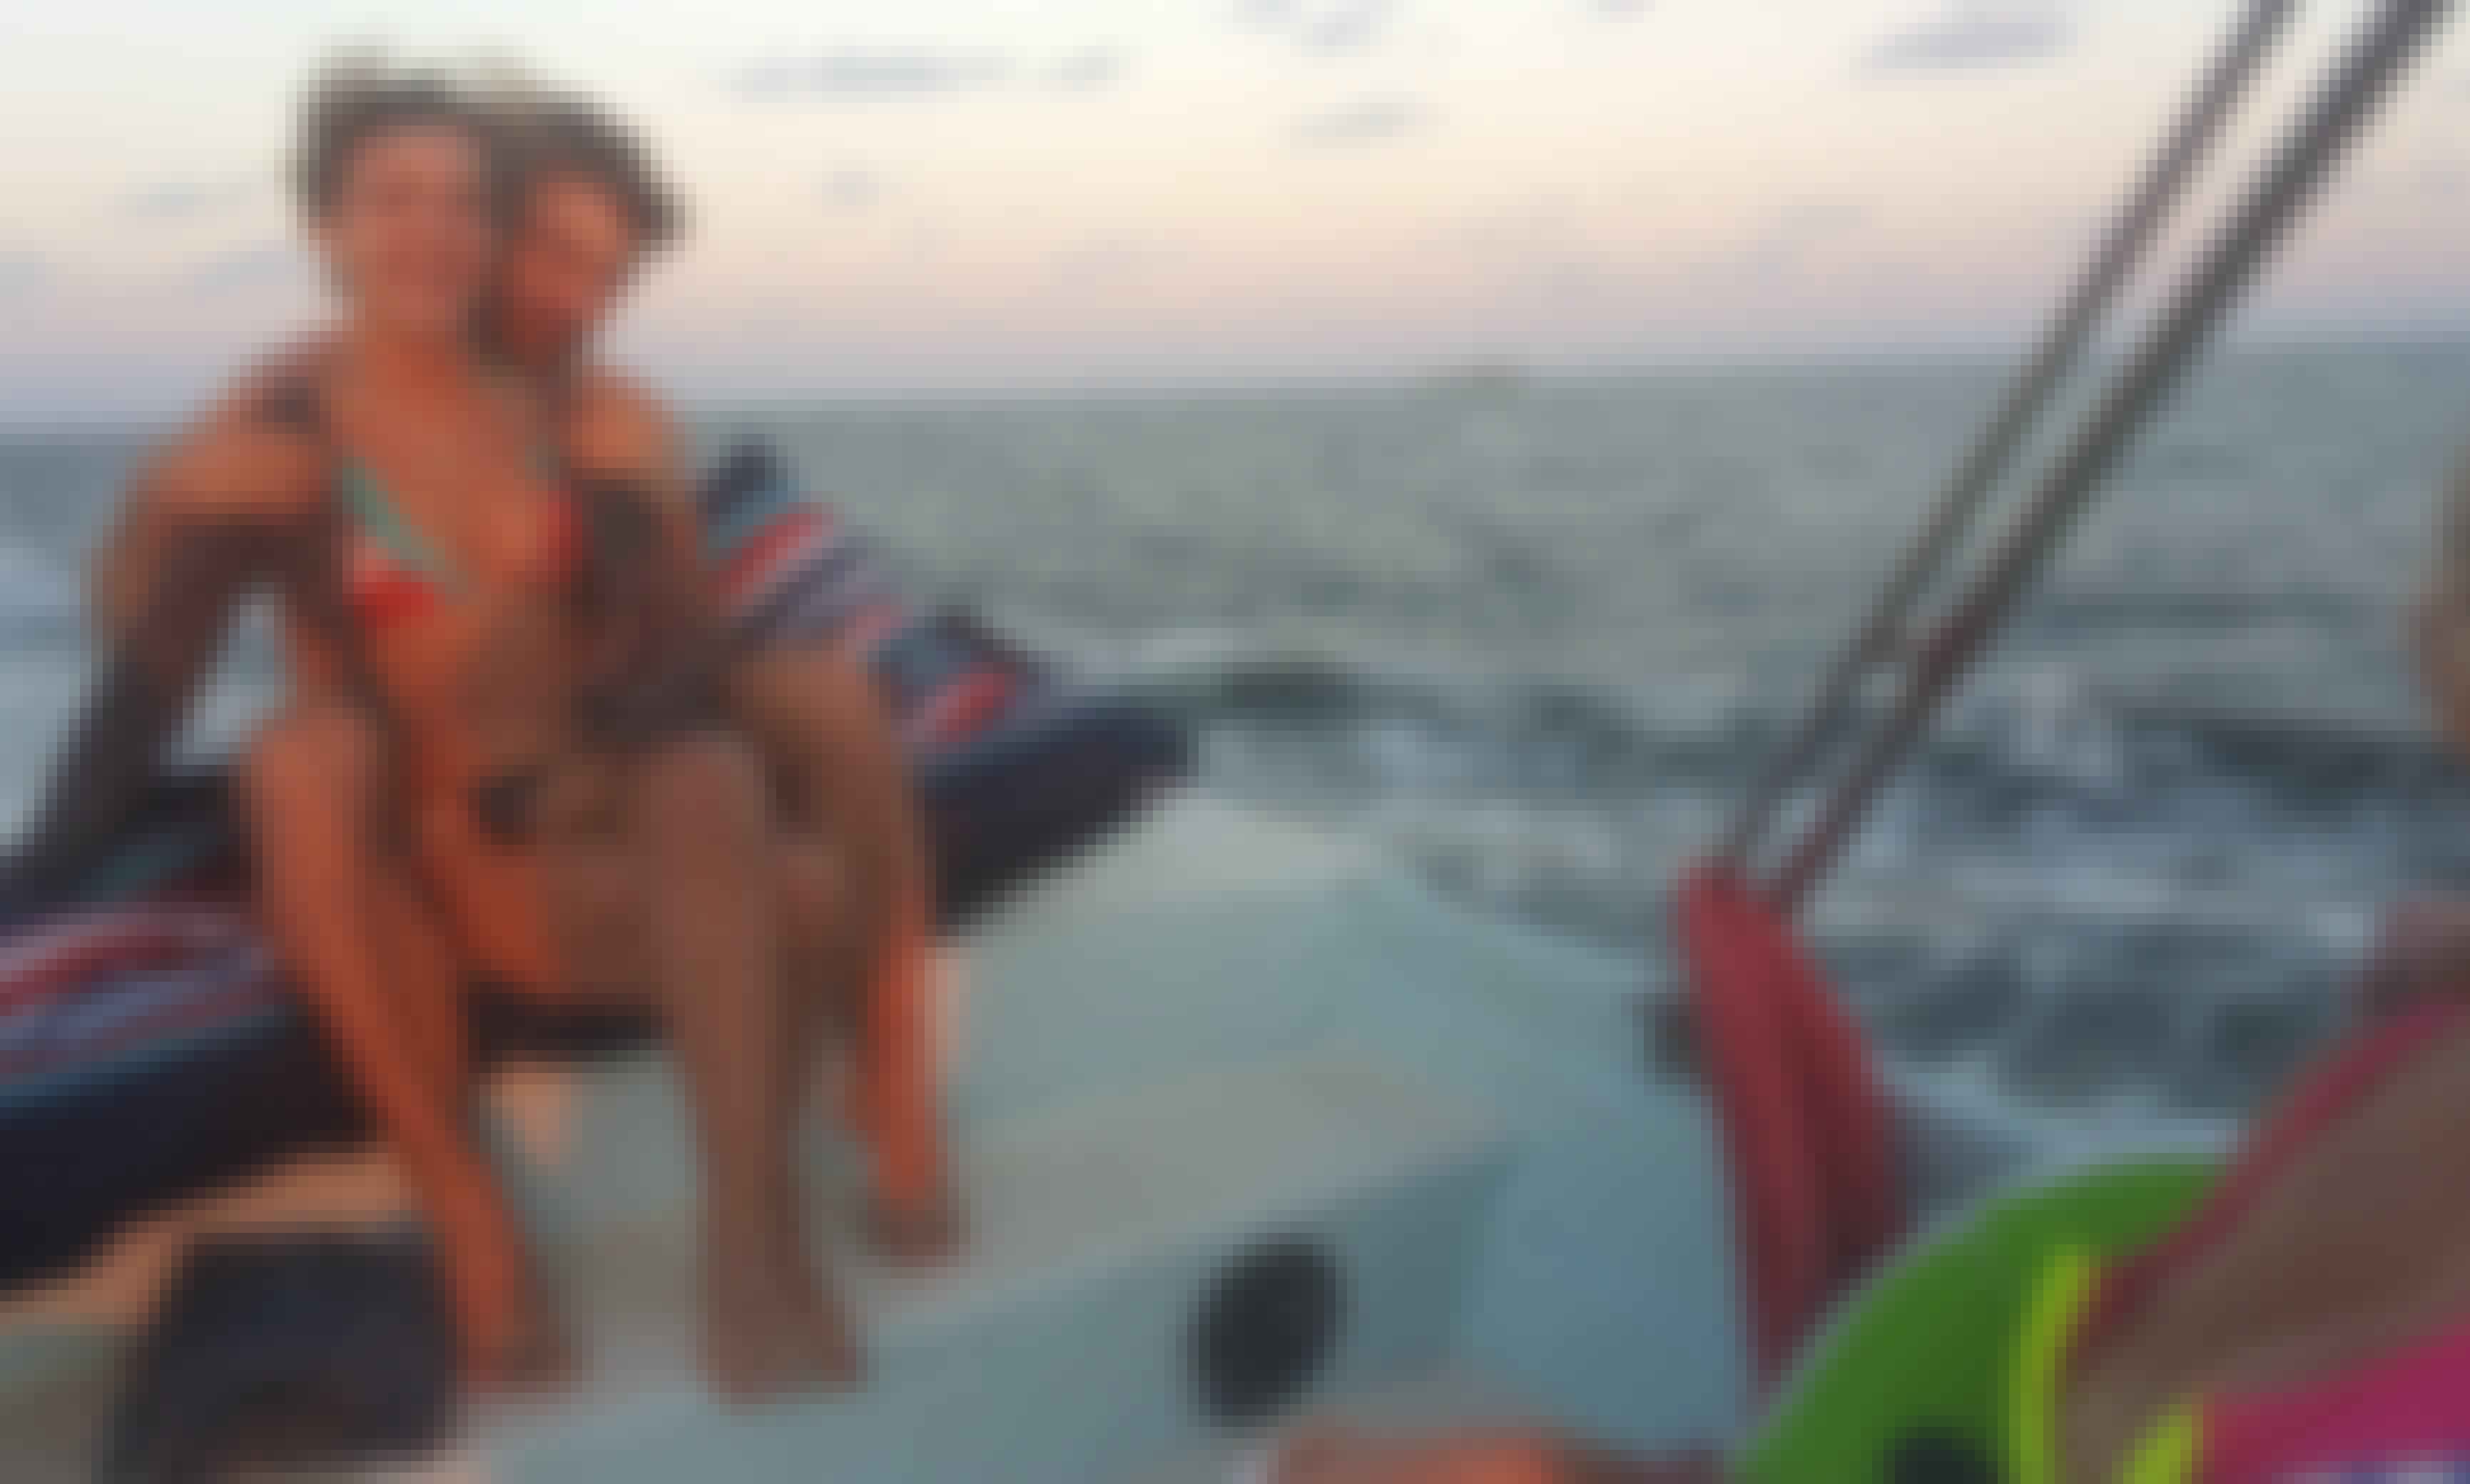 Rent this 18 ft Center Console with Captain for 4 People in Key West, Florida